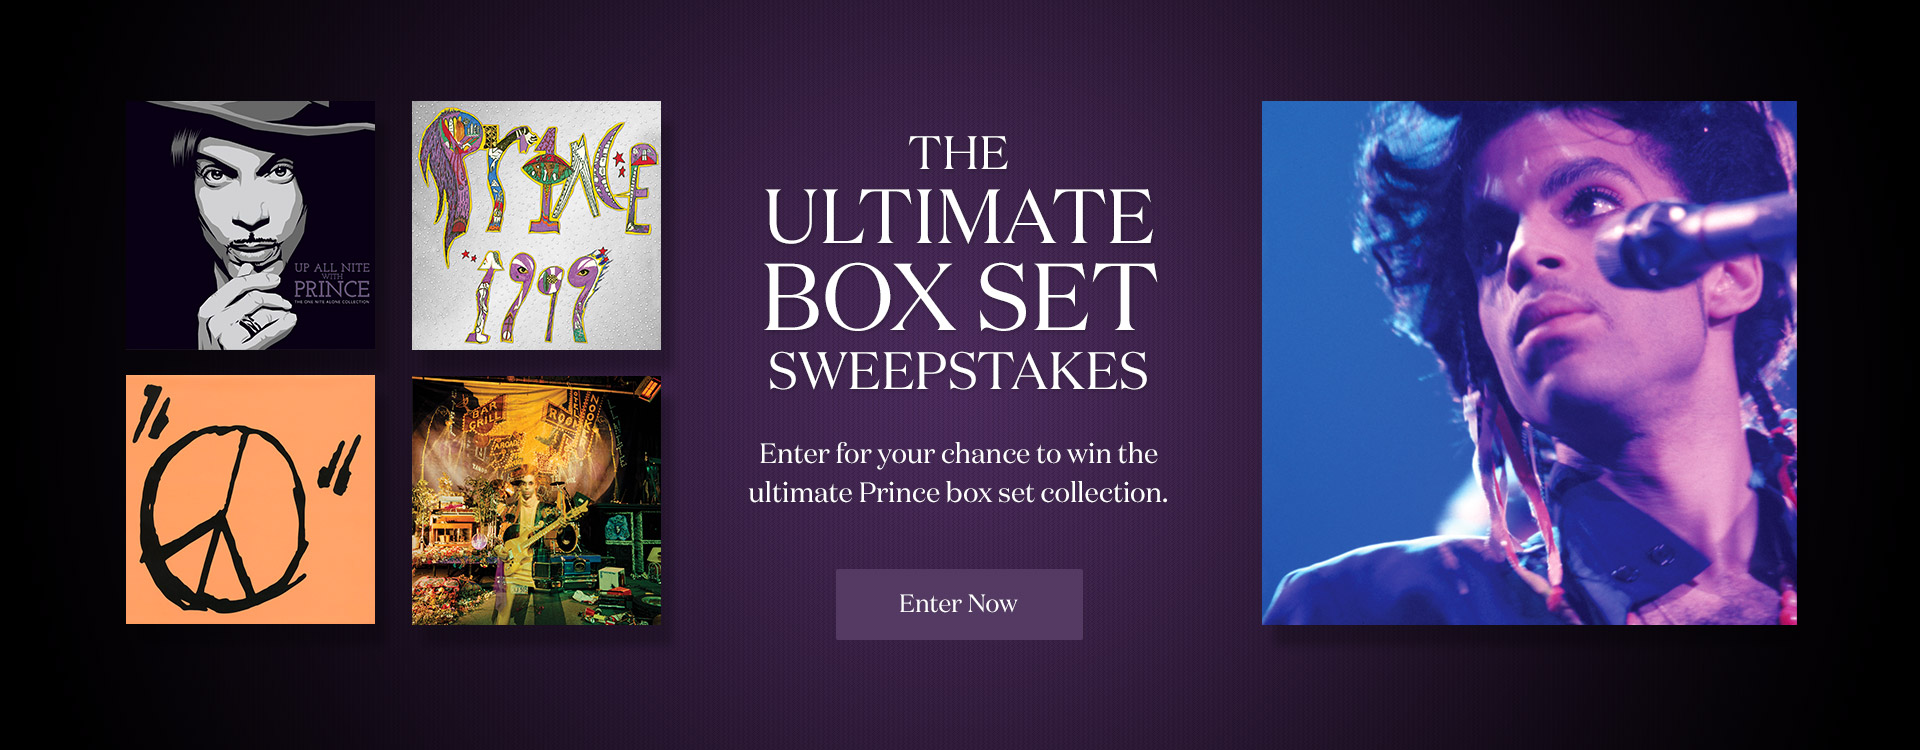 Enter for your chance to win the ultimate Prince box set collection.